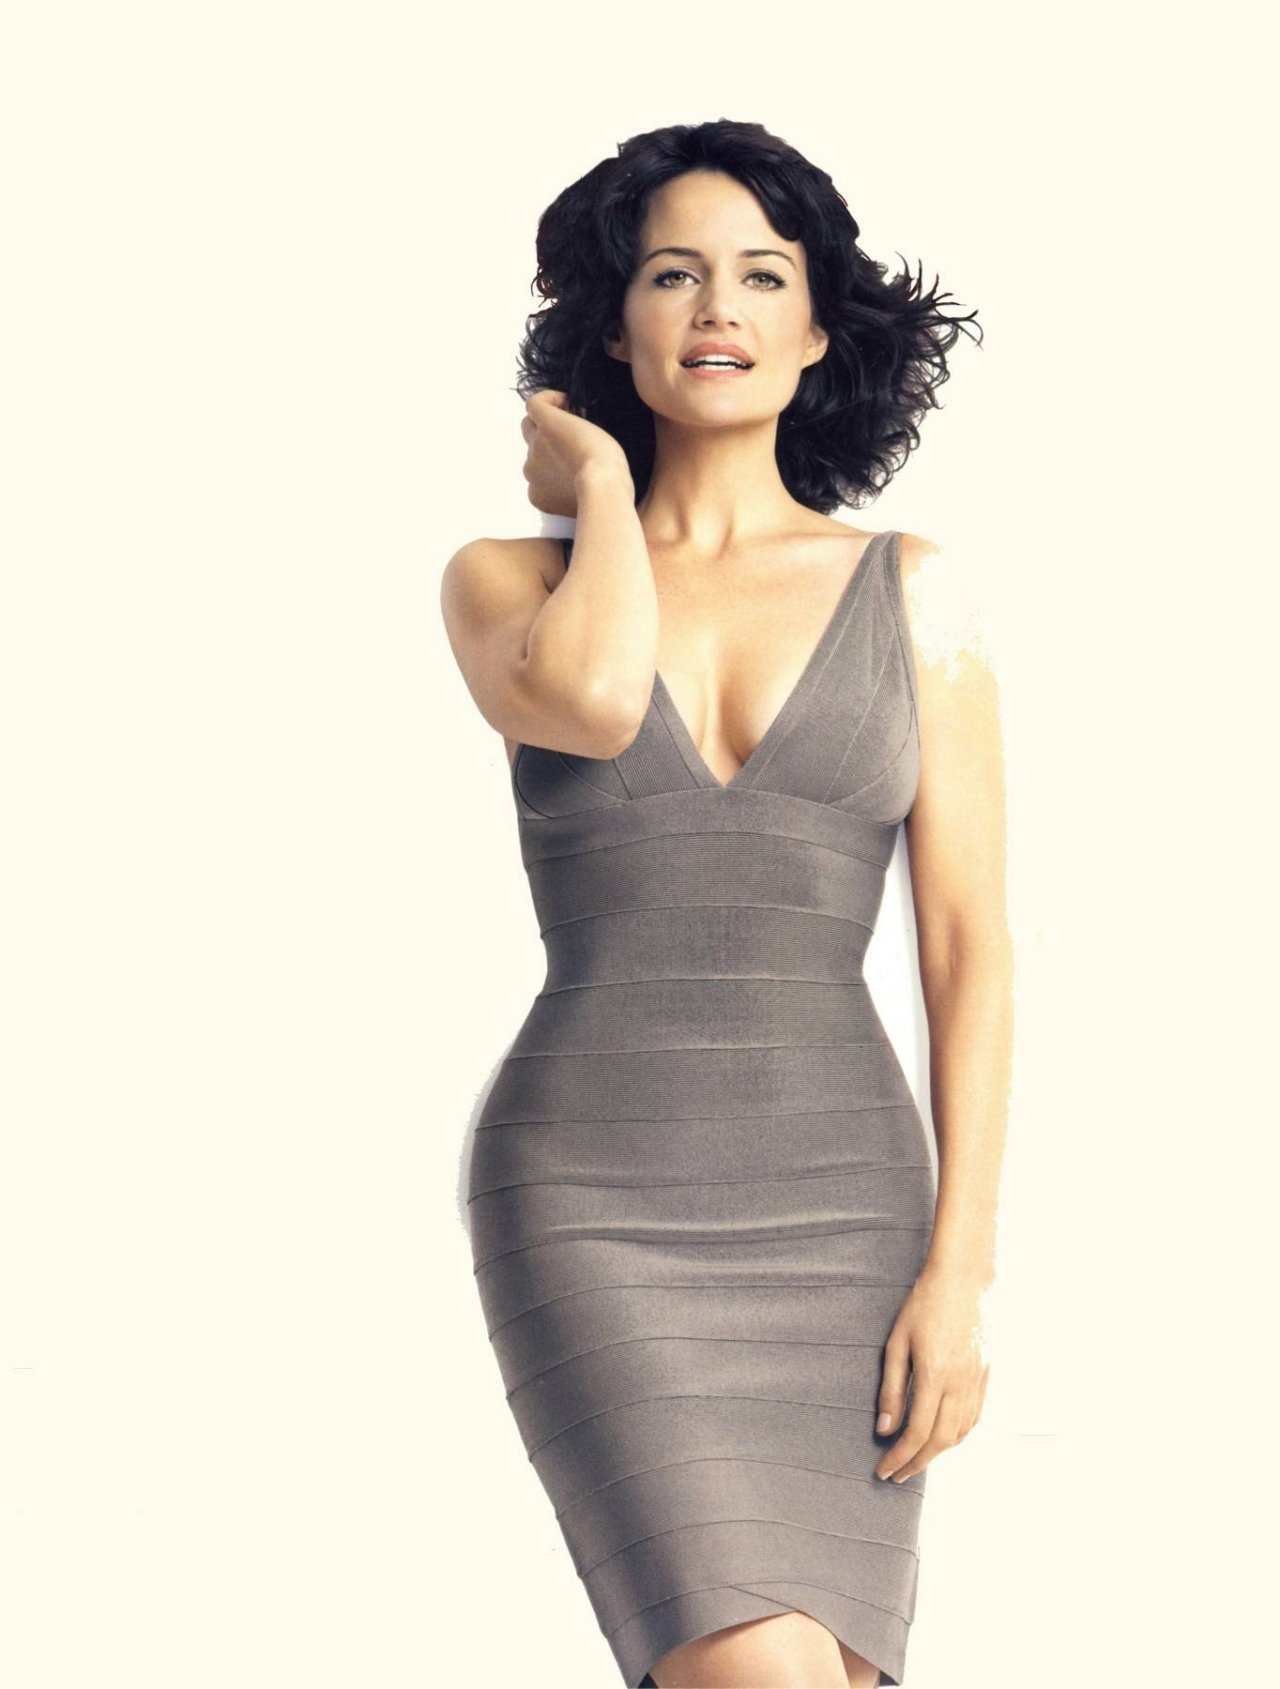 Carla Gugino leaked wallpapers